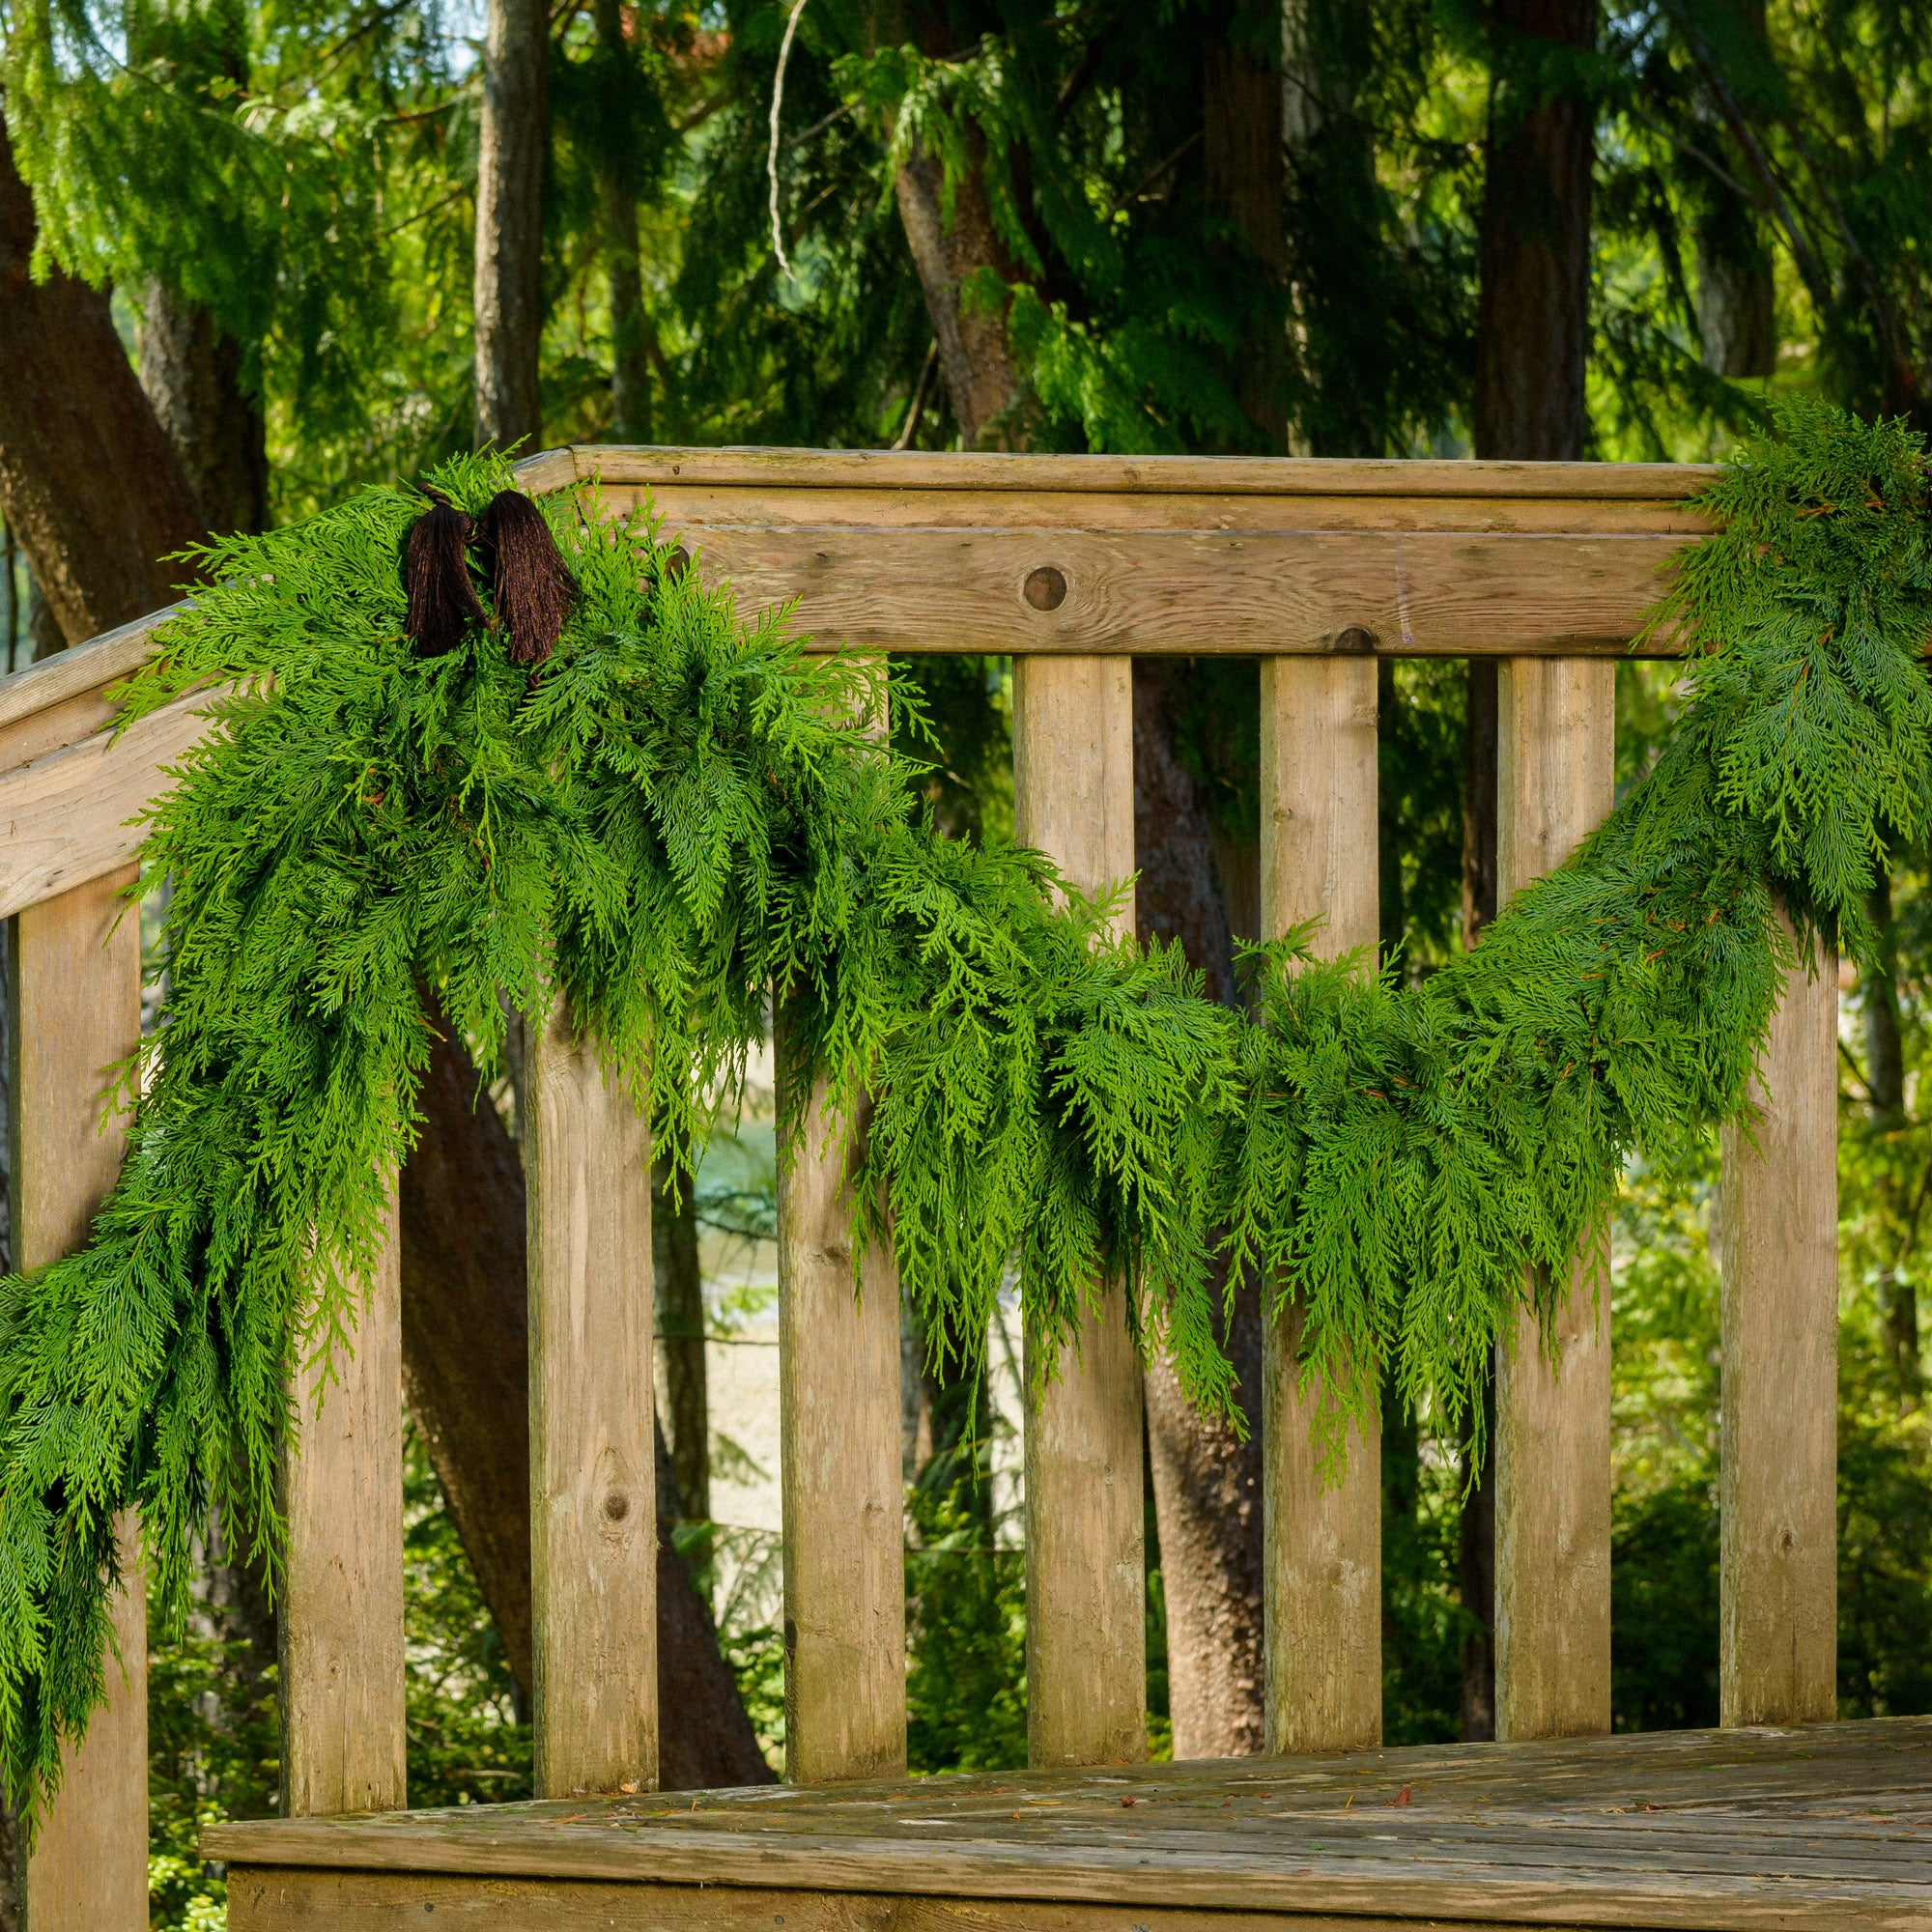 Western red cedar garland hanging from banister with chestnut garland tie